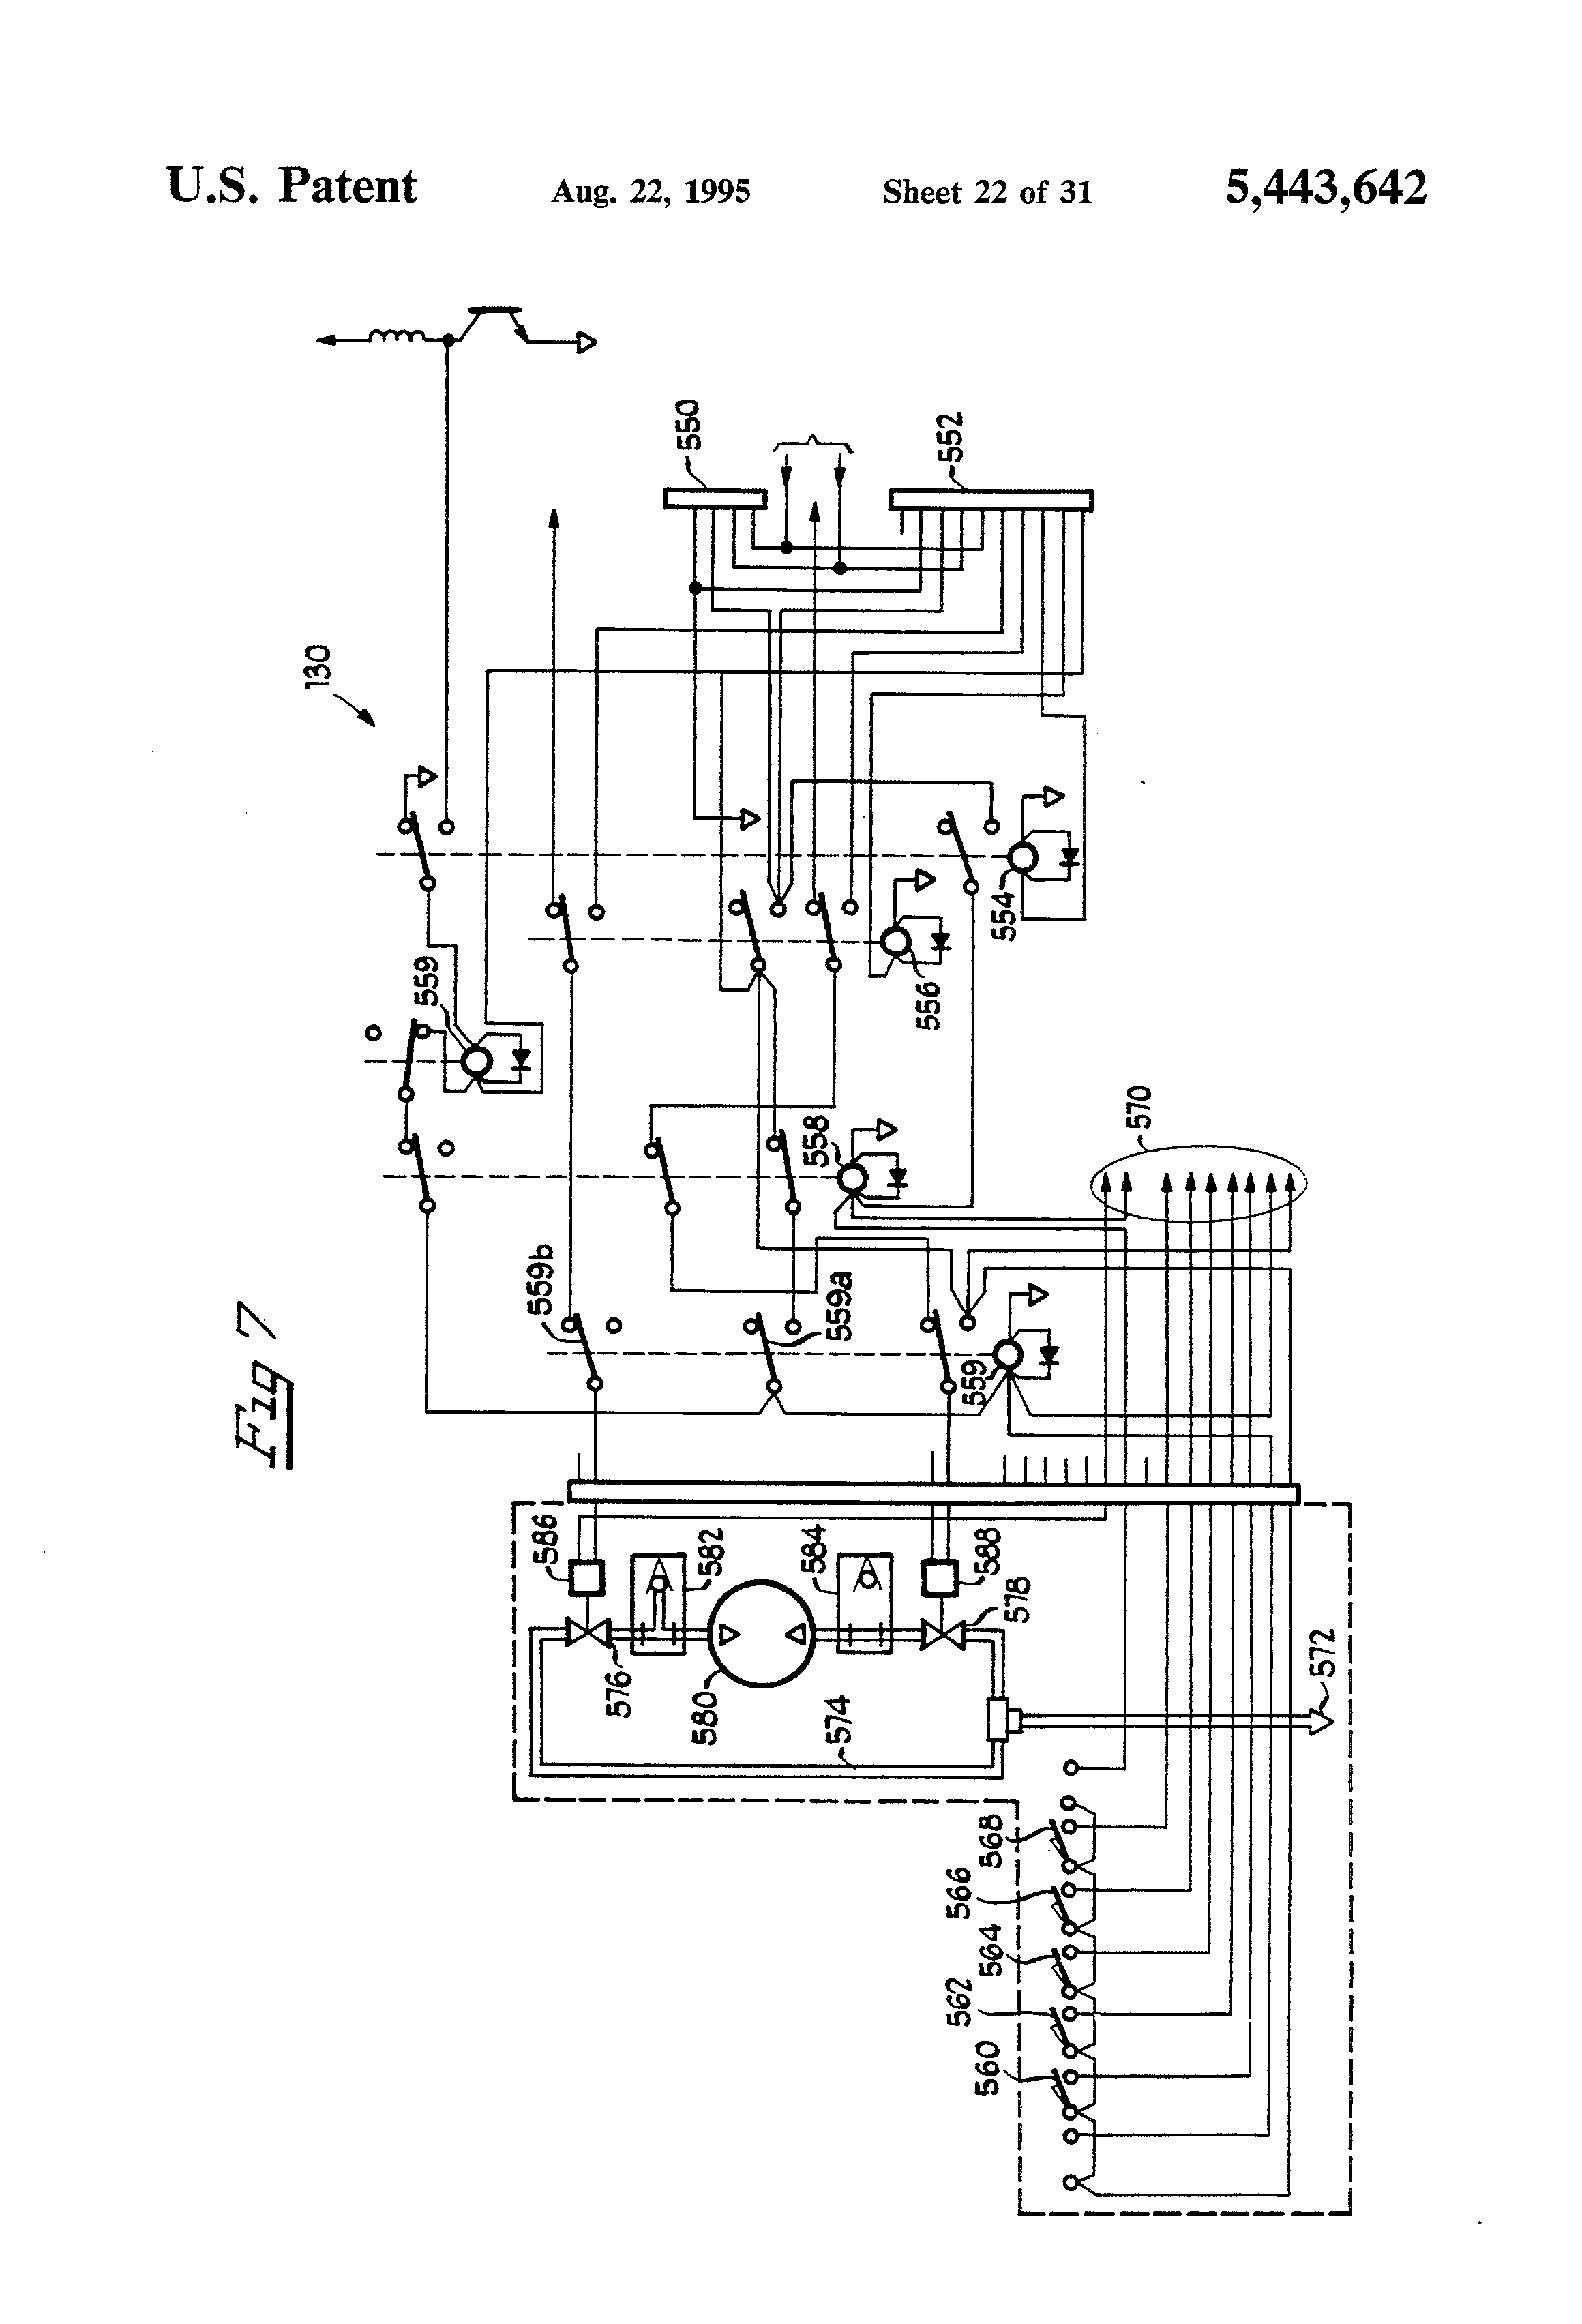 spray booth wiring diagram wiring library Truck Wiring Diagram patent us5443642 apparatus for electrostatic spray painting patent drawing rotary lift wiring diagram